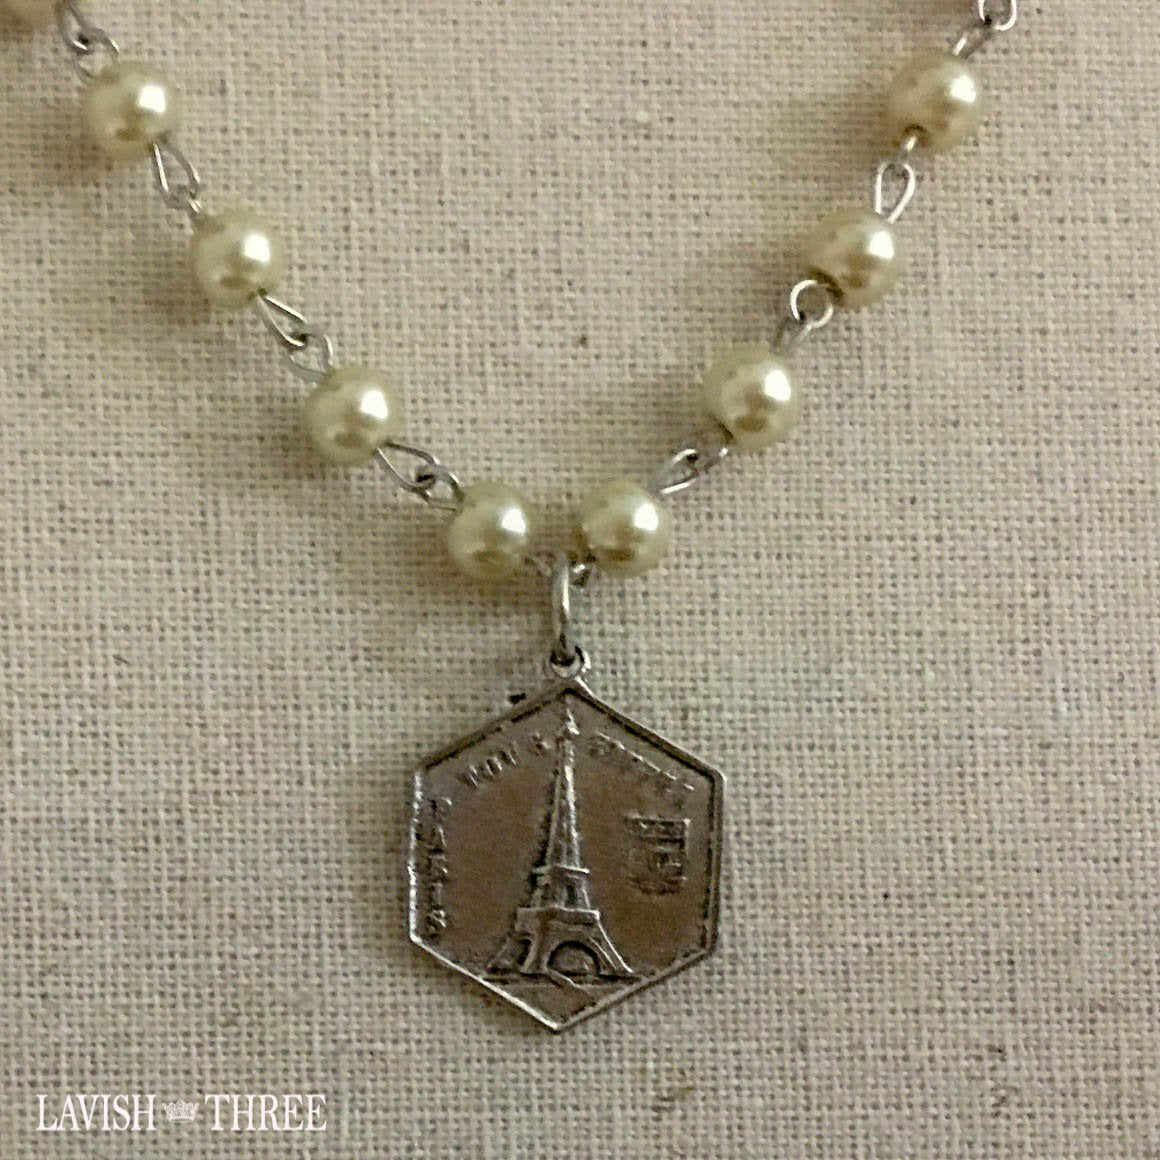 Paris silver eiffel tower charm on pearl necklace Lavish three 3